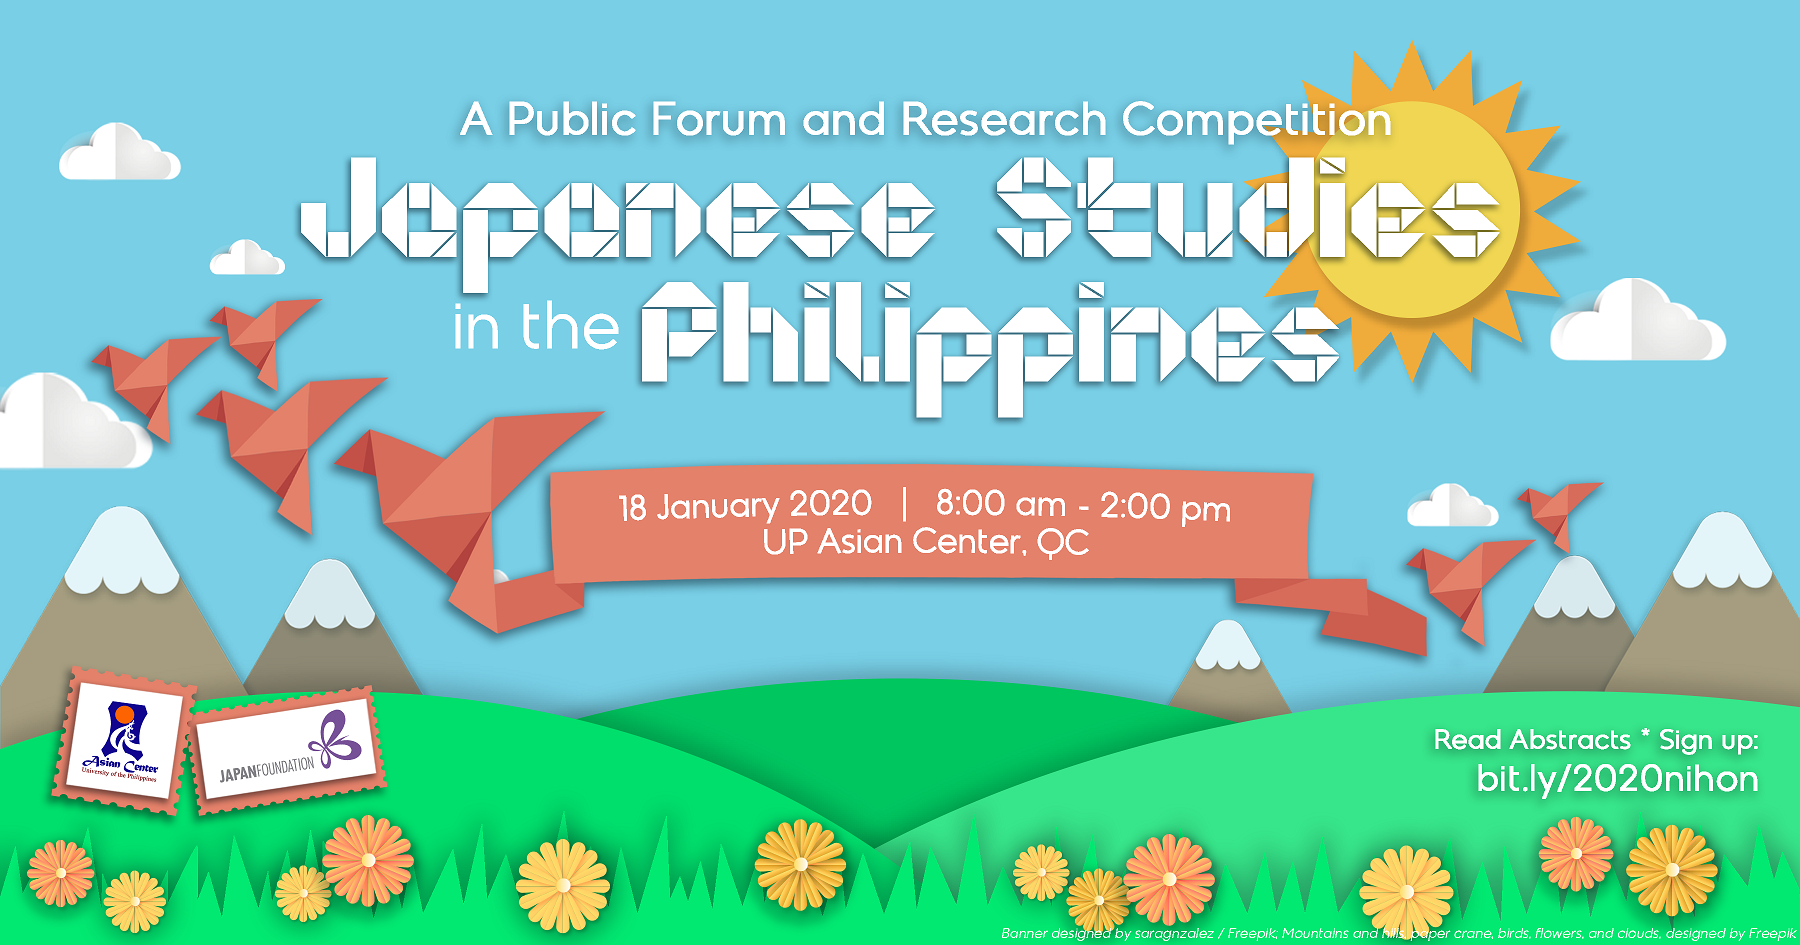 Japanese Studies in the Philippines: A Forum and Research Competition